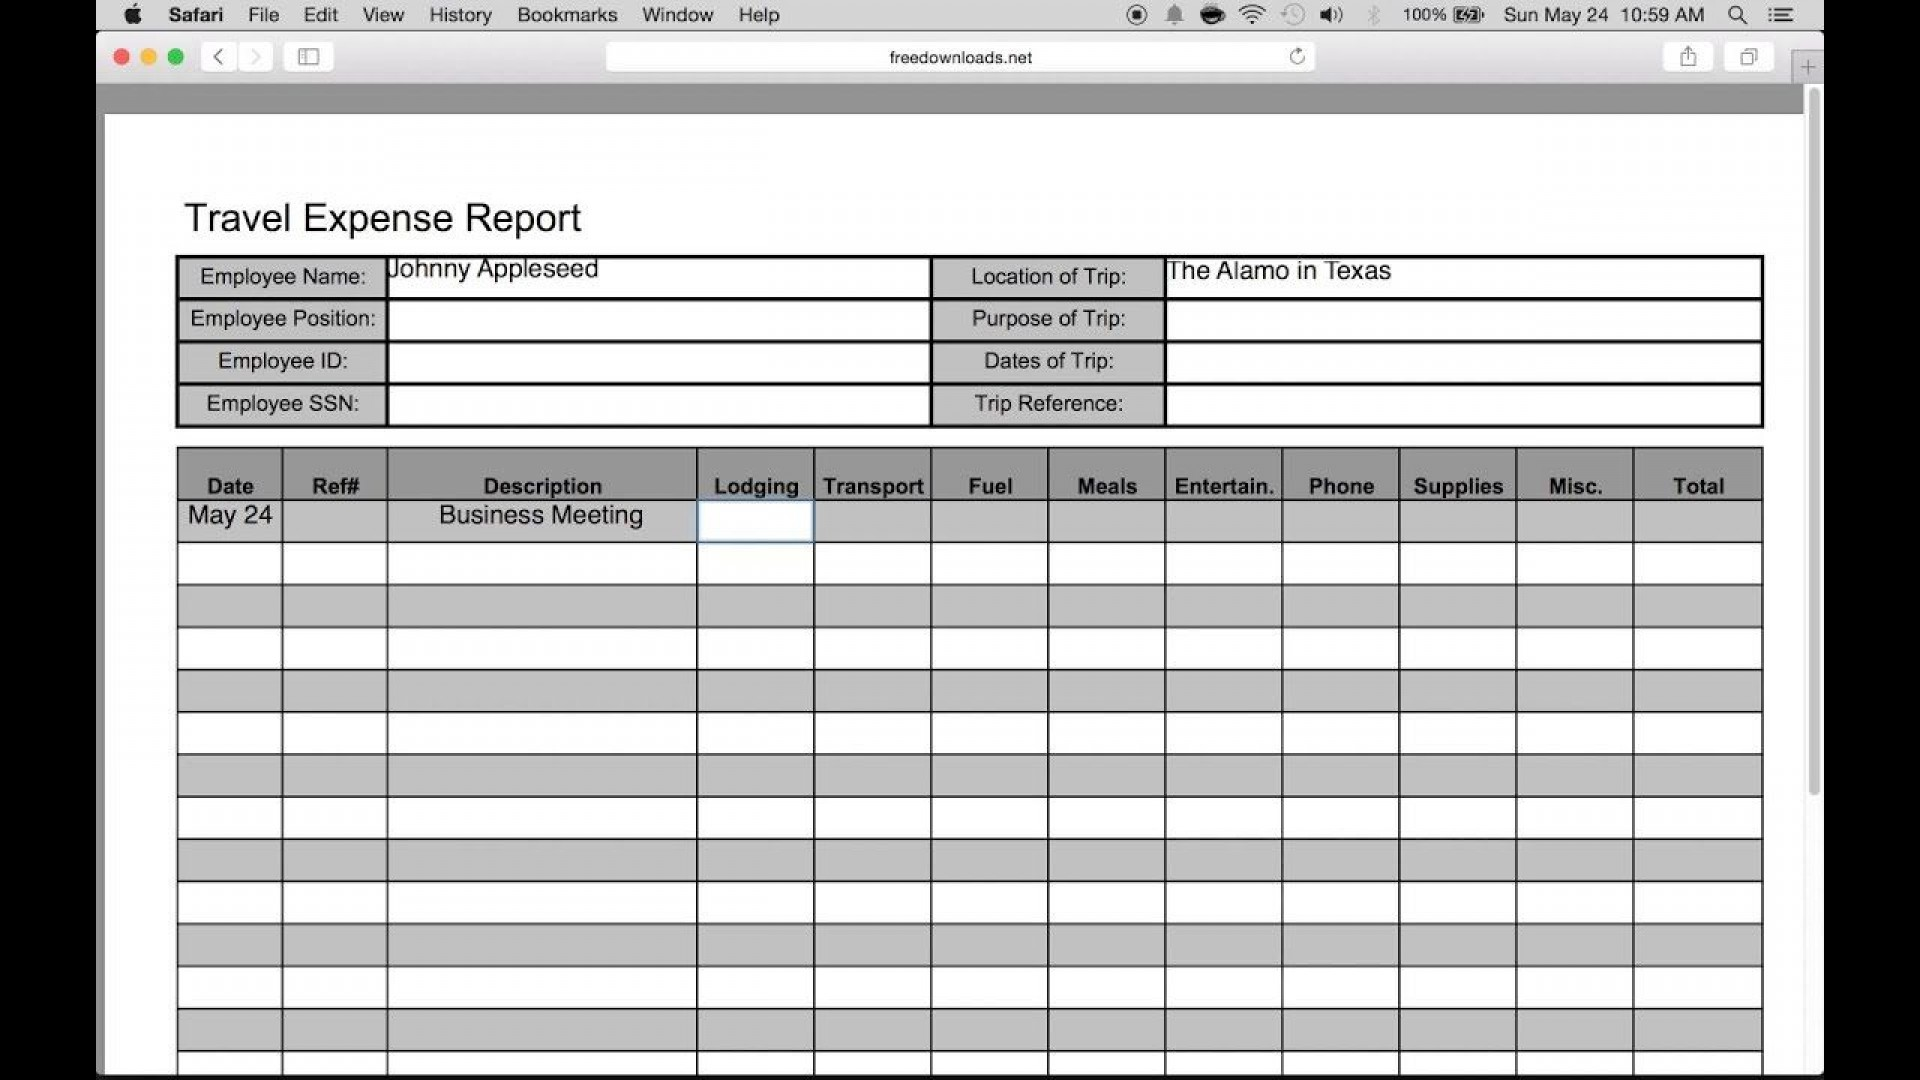 007 Wondrou Travel Expense Report Template Sample  Format Excel Free1920